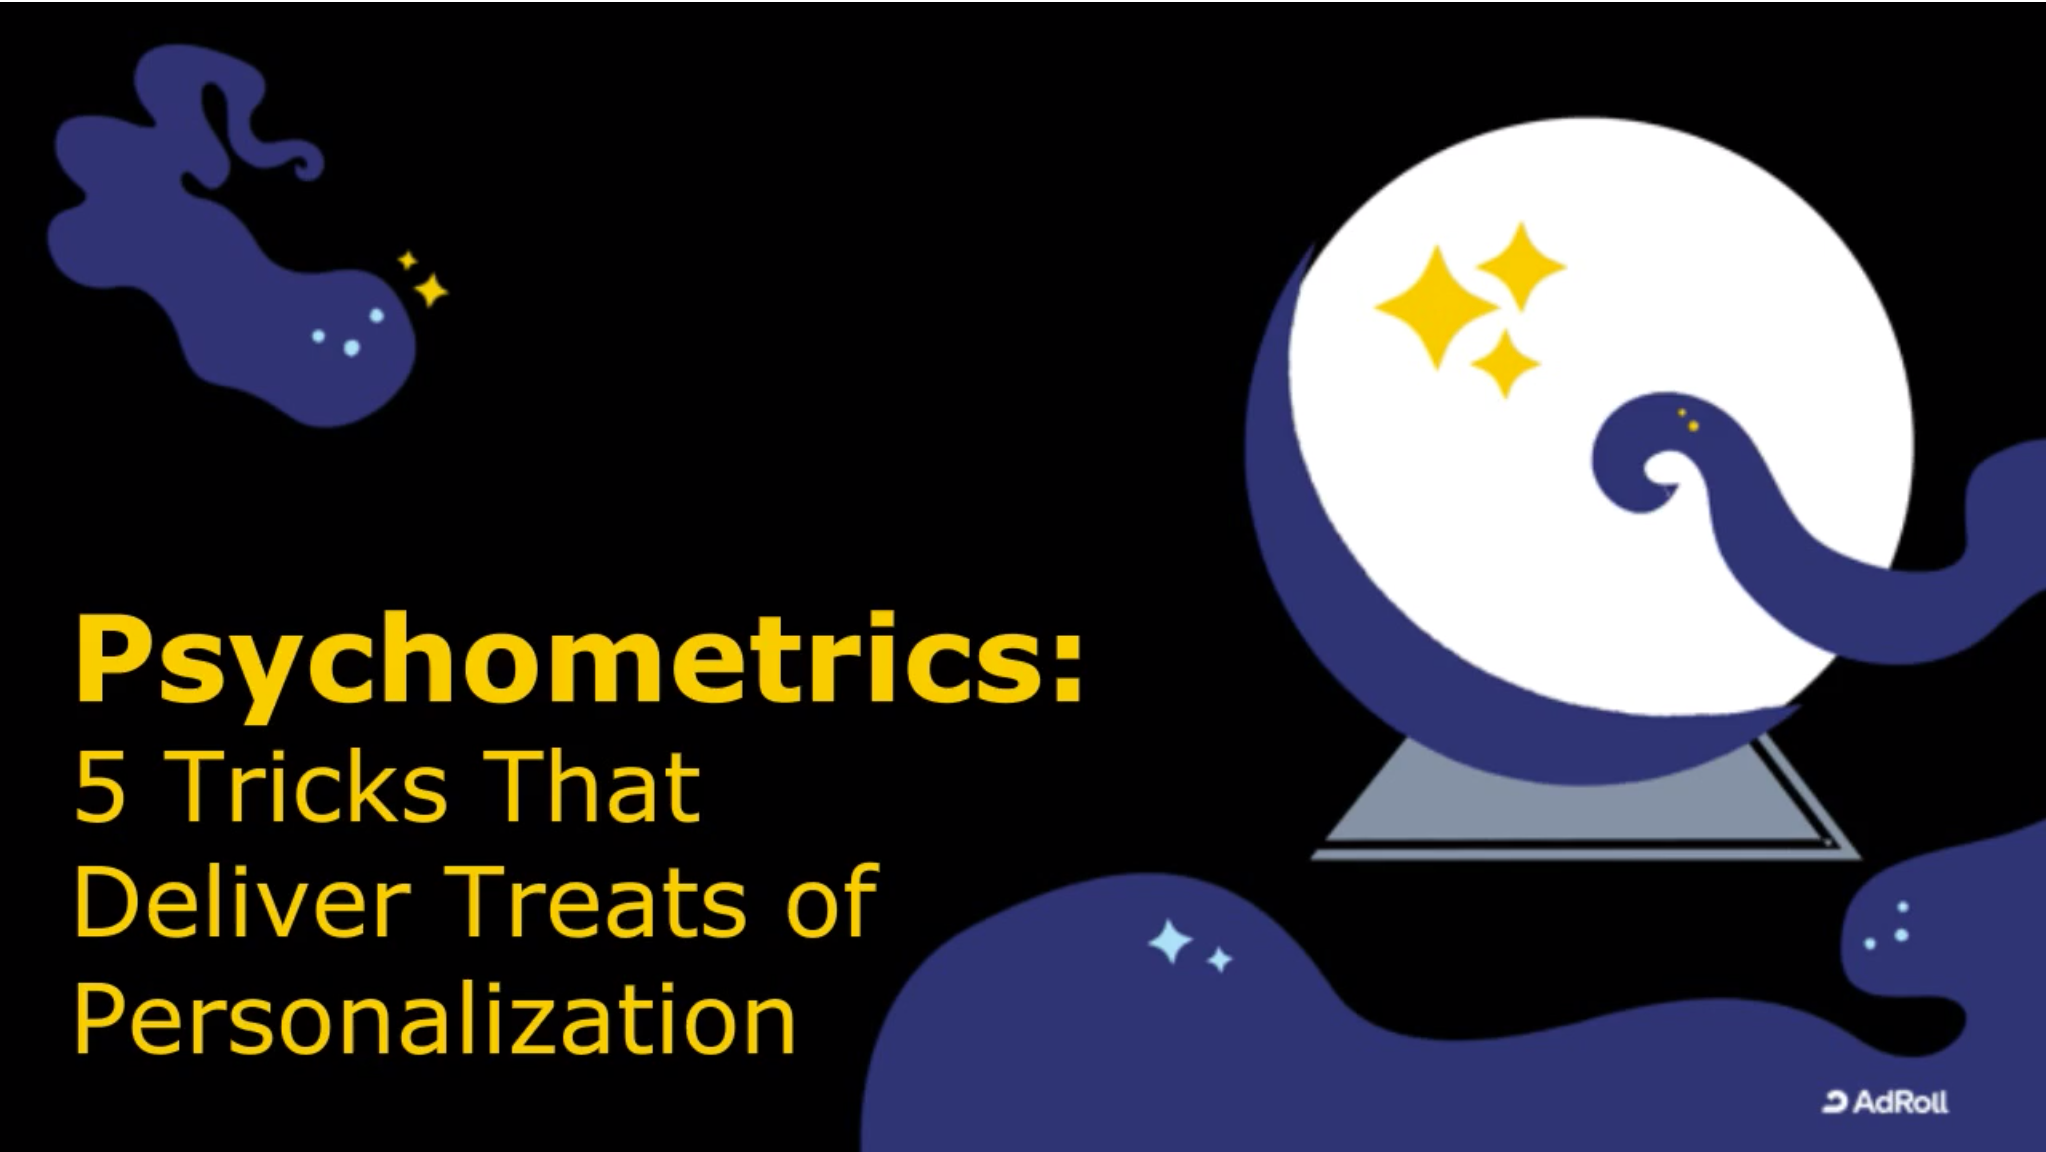 Psychometrics: how consumer attitudes influence buying behavior